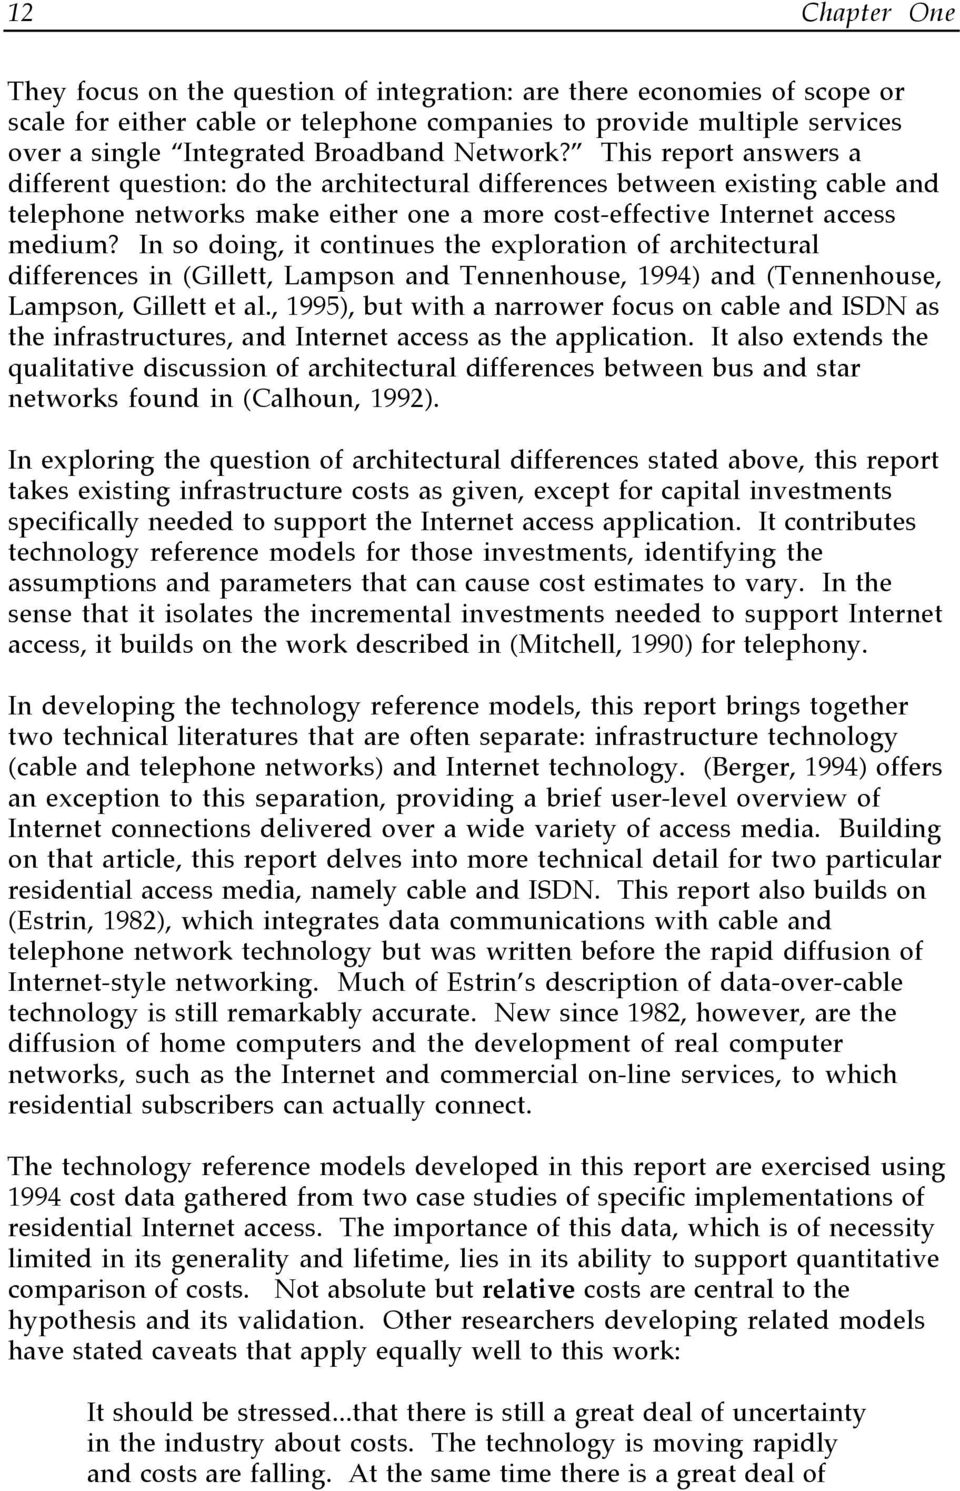 Ó This report answers a different question: do the architectural differences between existing cable and telephone networks make either one a more cost-effective Internet access medium?